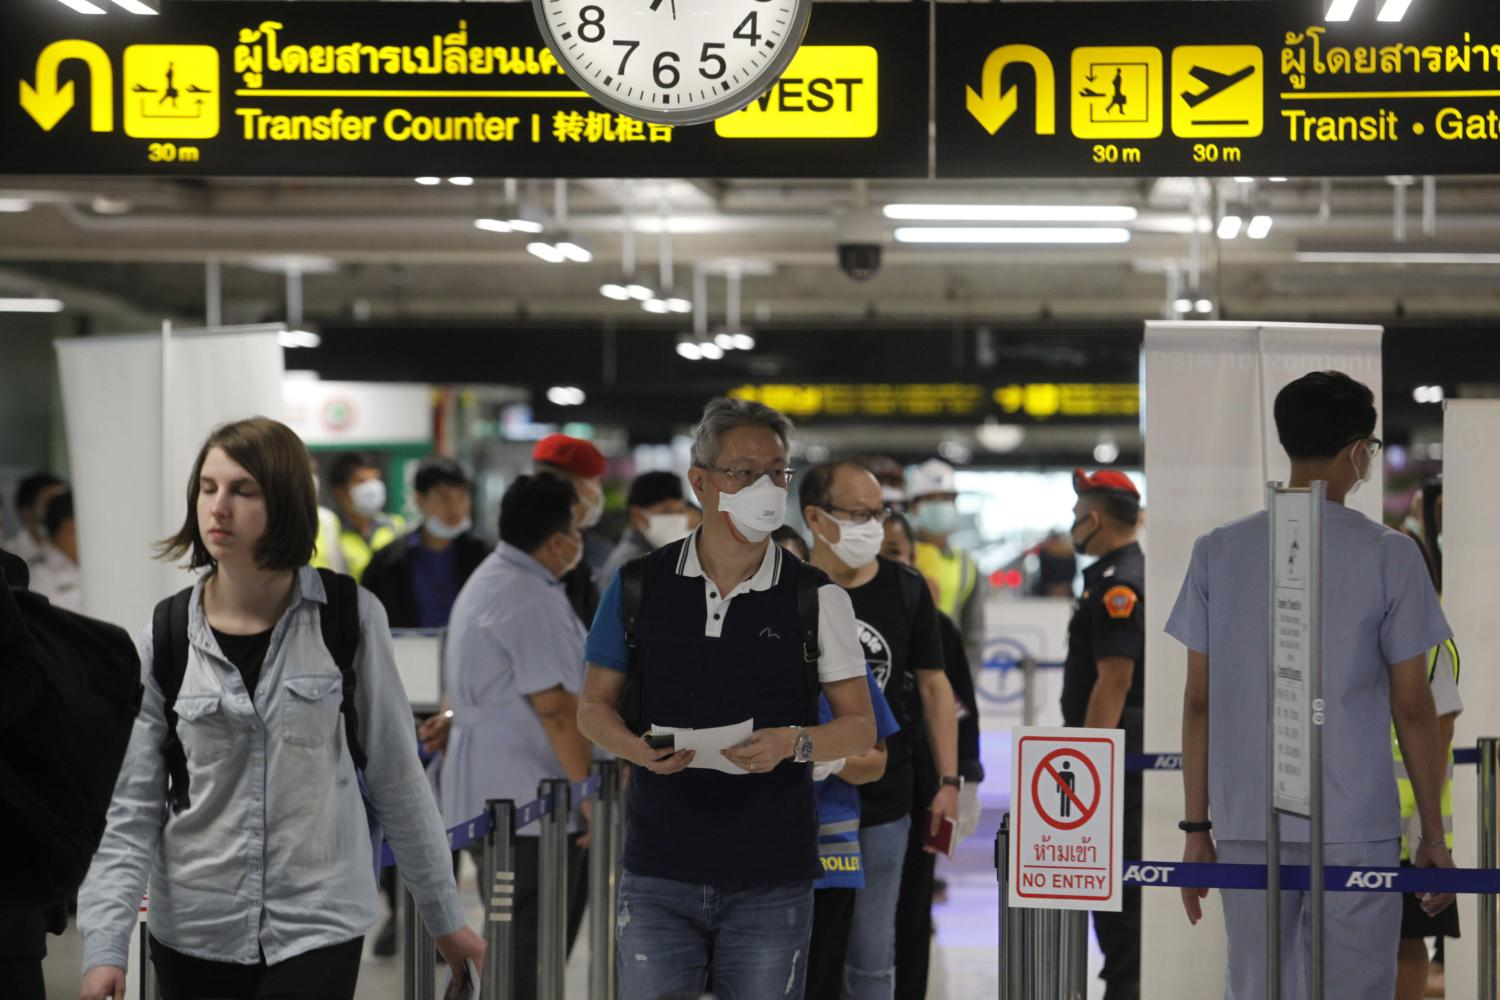 Passengers arriving from several countries including China pass a thermoscan machine at Suvarnabhumi airport as officials introduce precautionary measures against the spread of Covid-19. (Photo by Wichan Charoenkiatpakul)